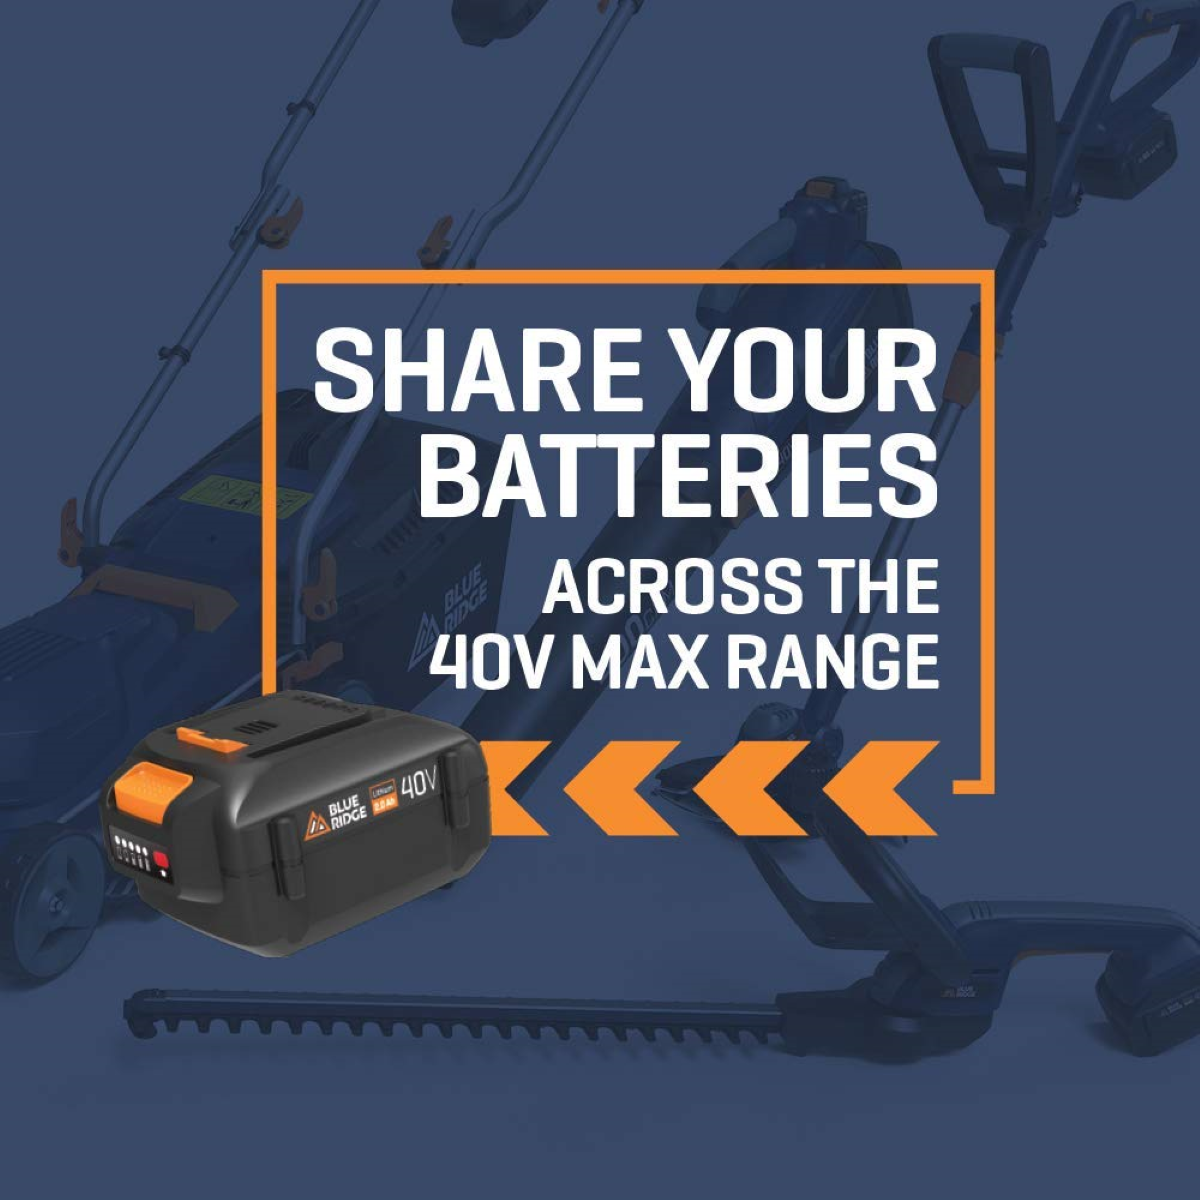 Powered by a 40V 2.0Ah rechargeable battery pack that's compatible with all other BLUE RIDGE 40v cordless tools